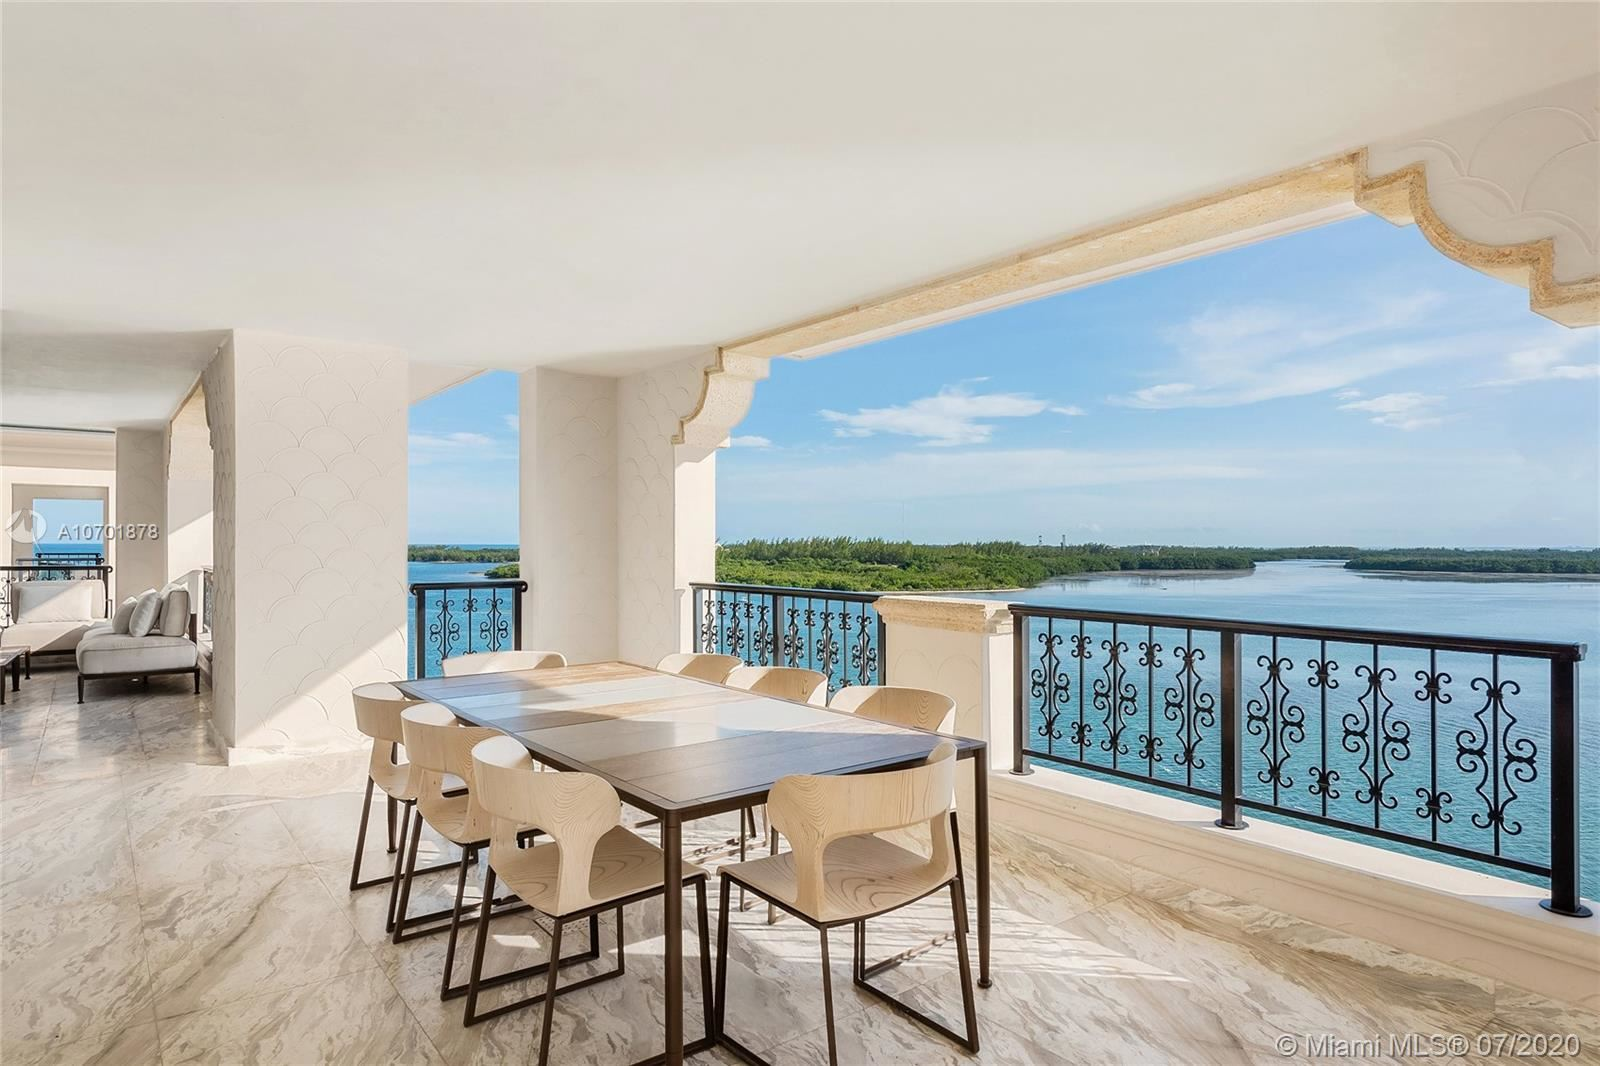 Photo 27 of Listing MLS a10701878 in 5292 Fisher Island Dr #5292 Miami FL 33109